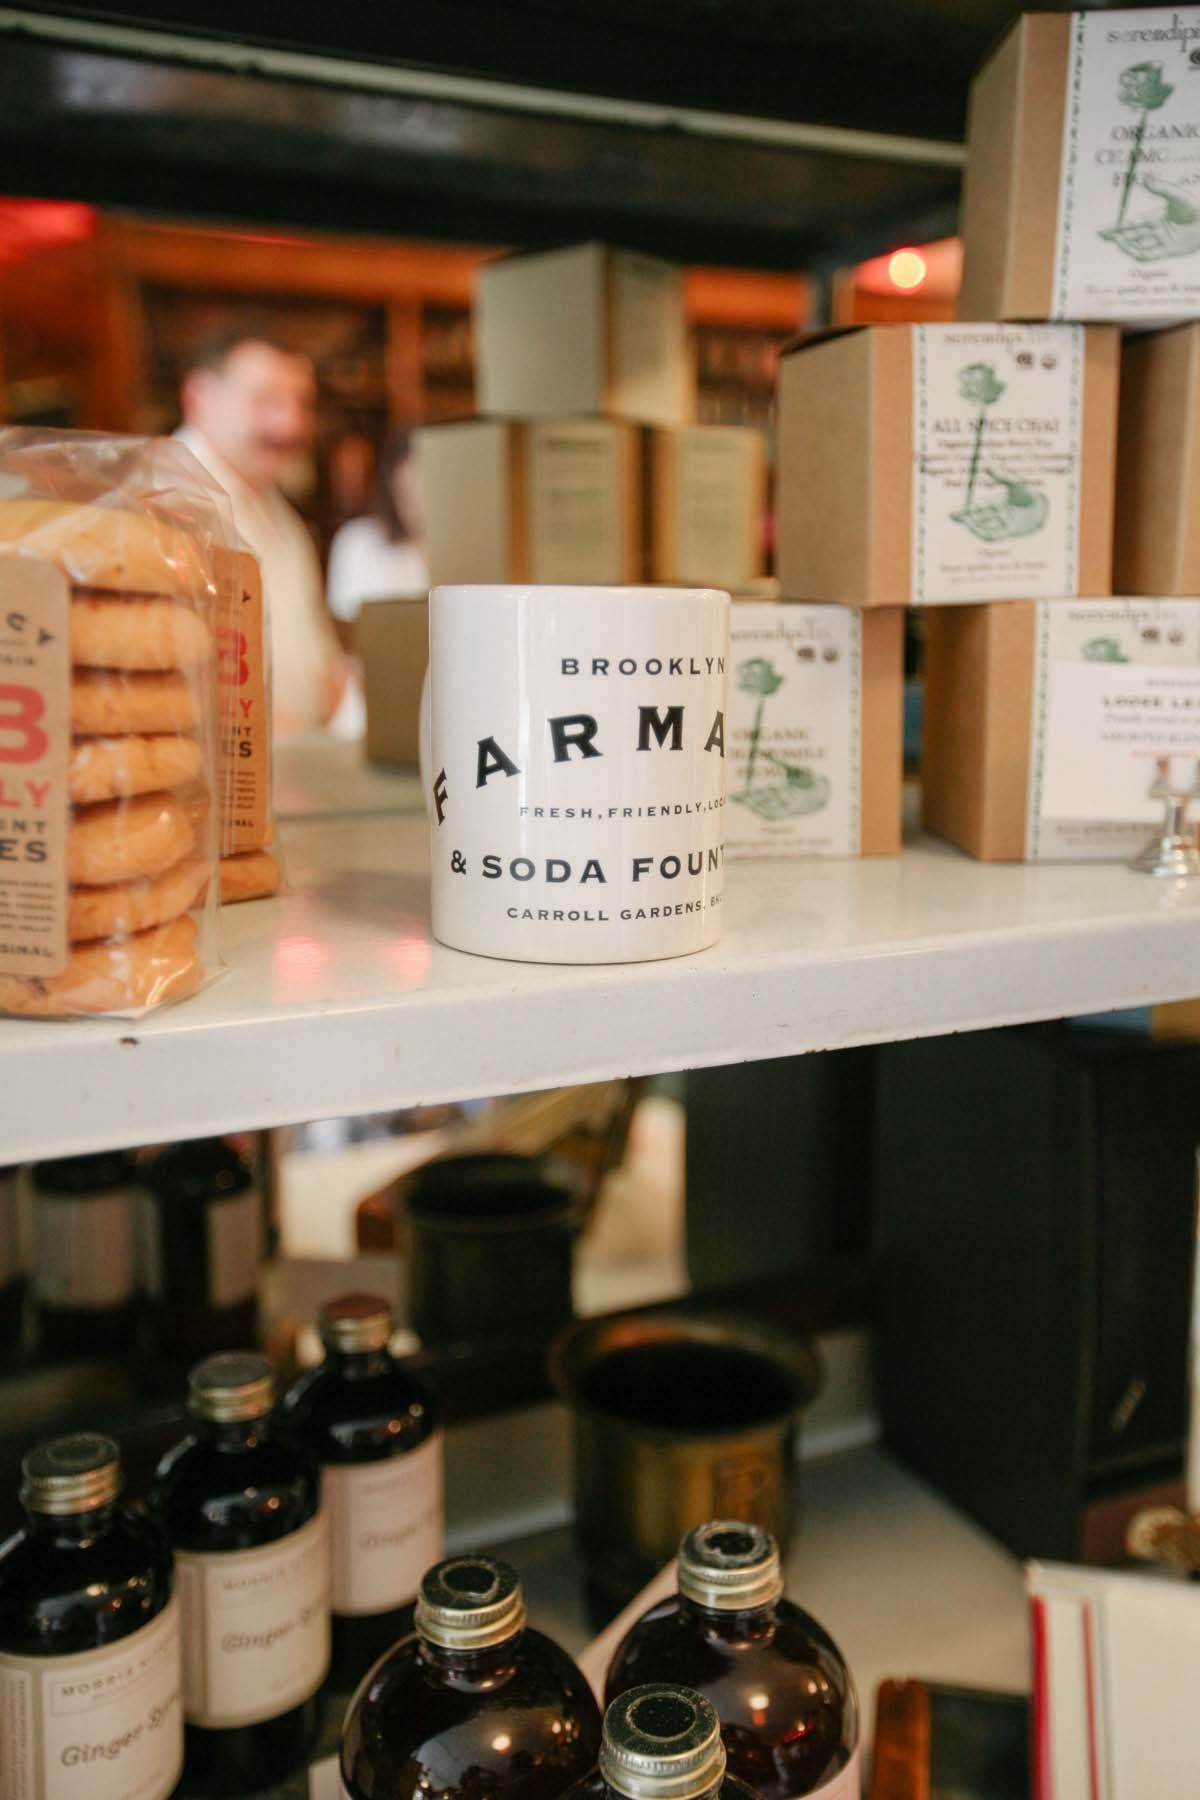 Brooklyn Farmacy & Soda Fountain